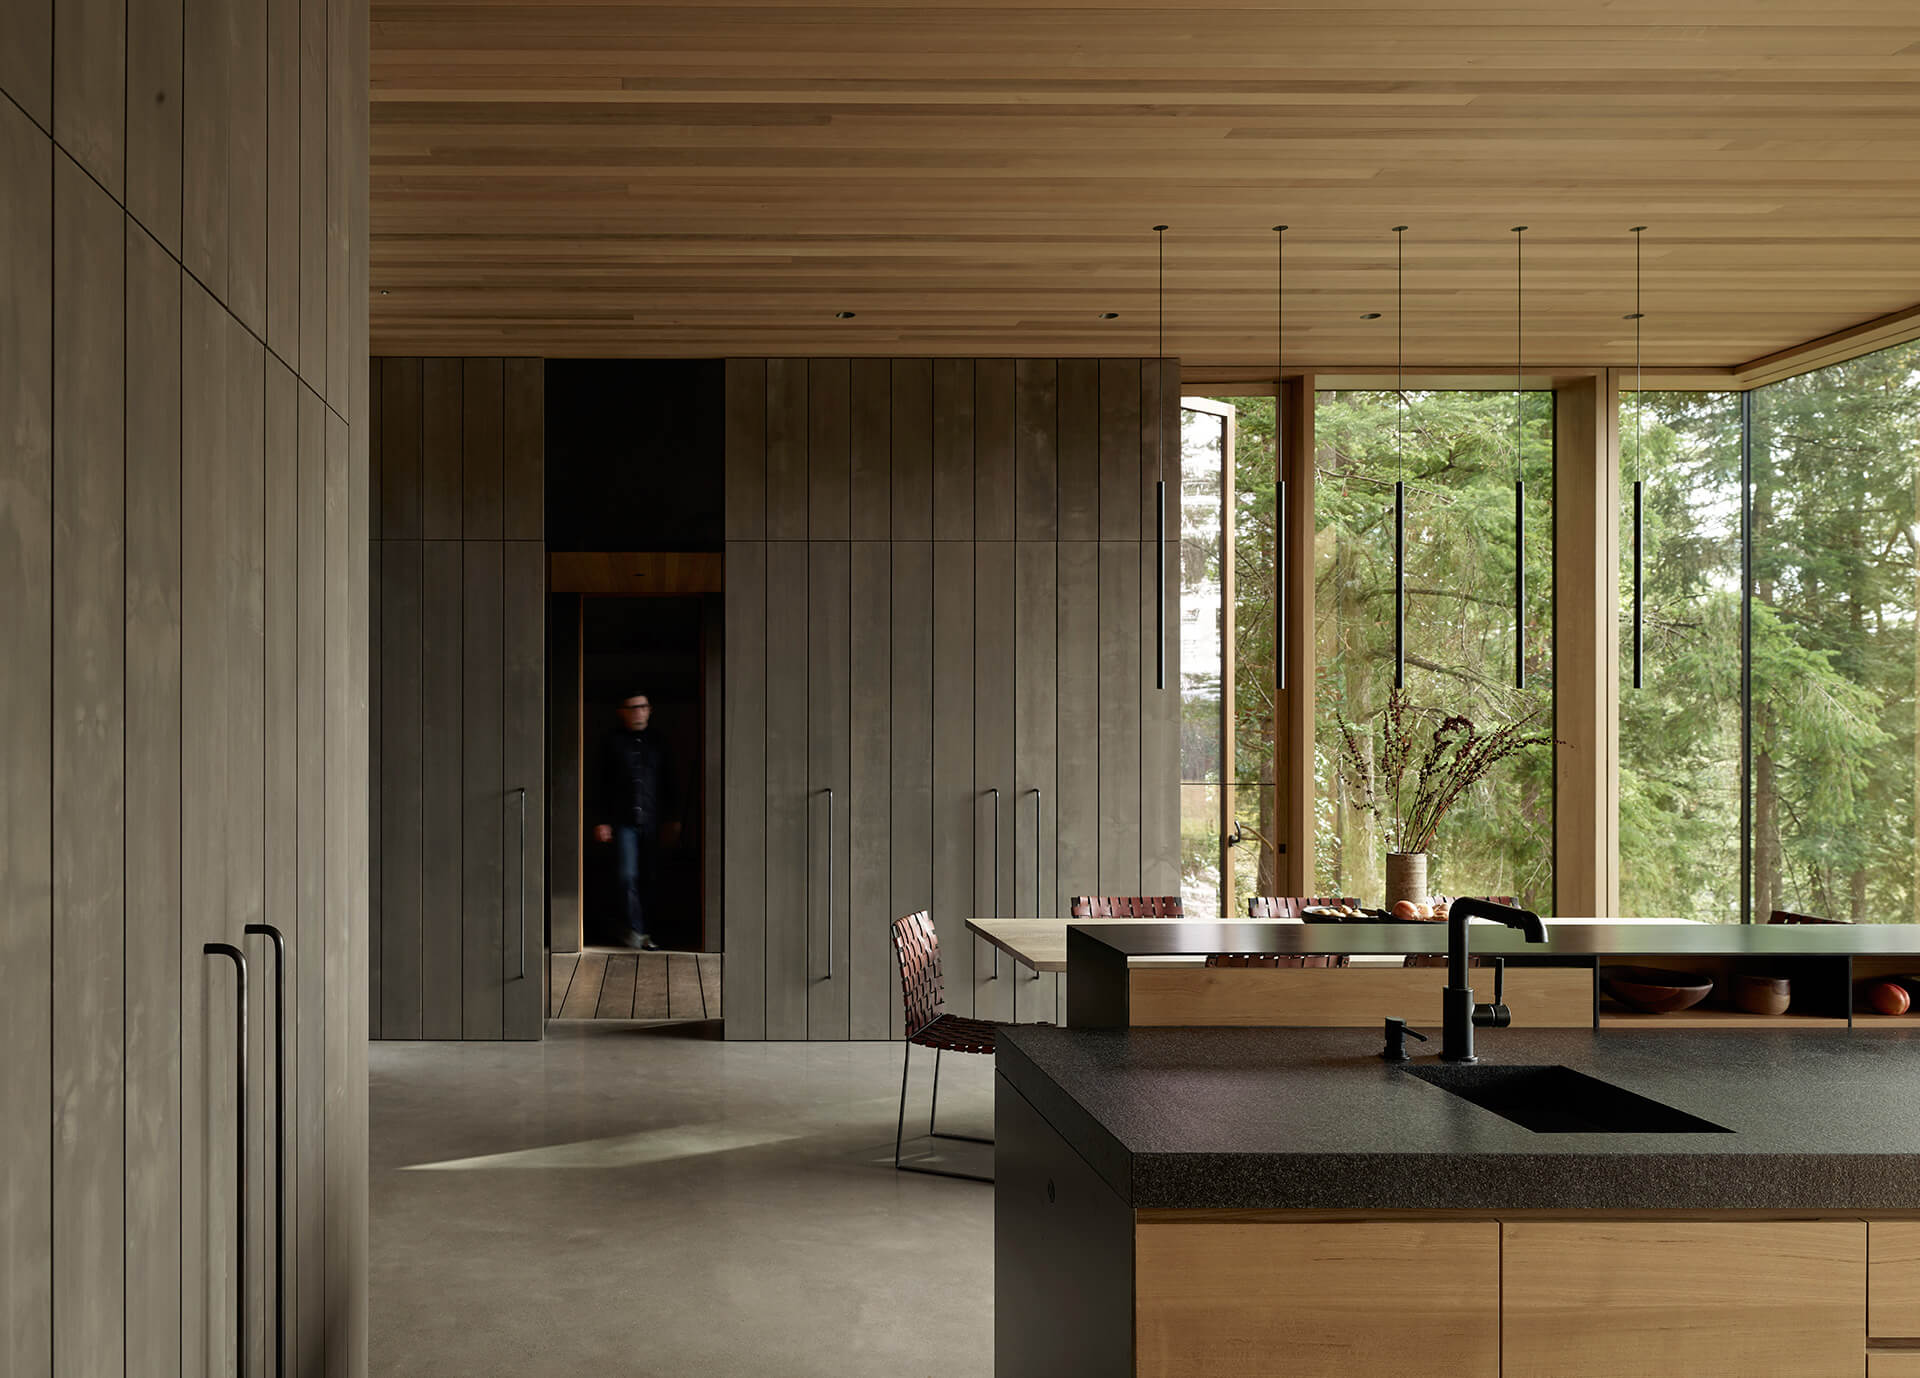 Light wooden material palette employed for Whidbey Island Farm Retreat's interiors | Whidbey Island Farm Retreat by Mwworks | STIRworld